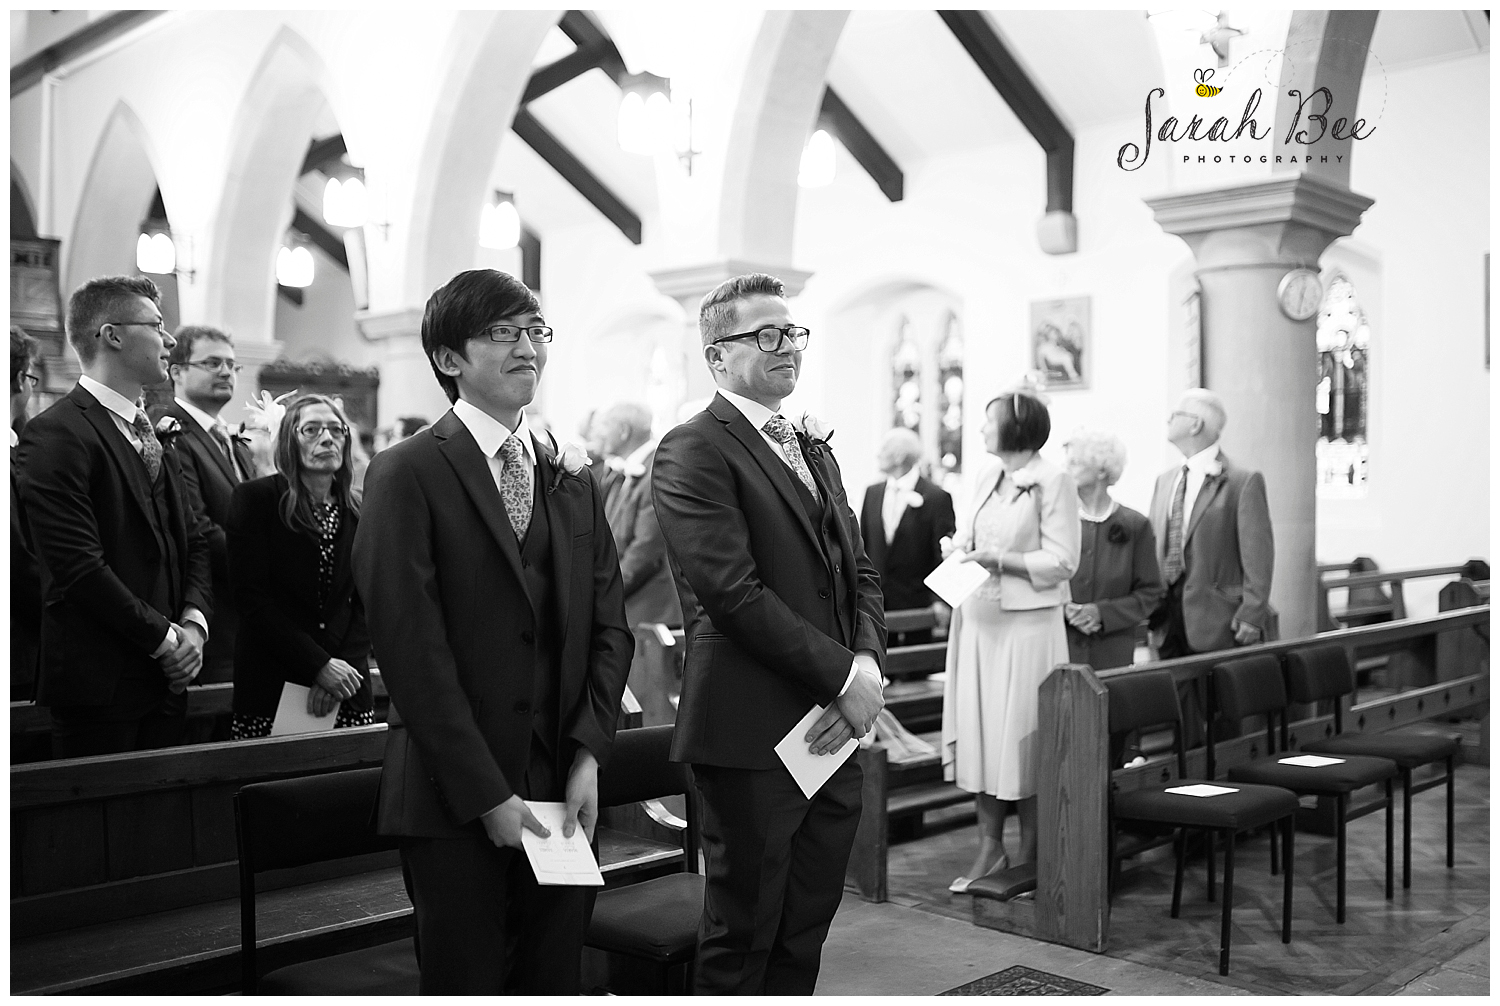 wedding photography with sarah bee photography, Peruga woodheys glossop, documentory photography wedding photographer_0209.jpg